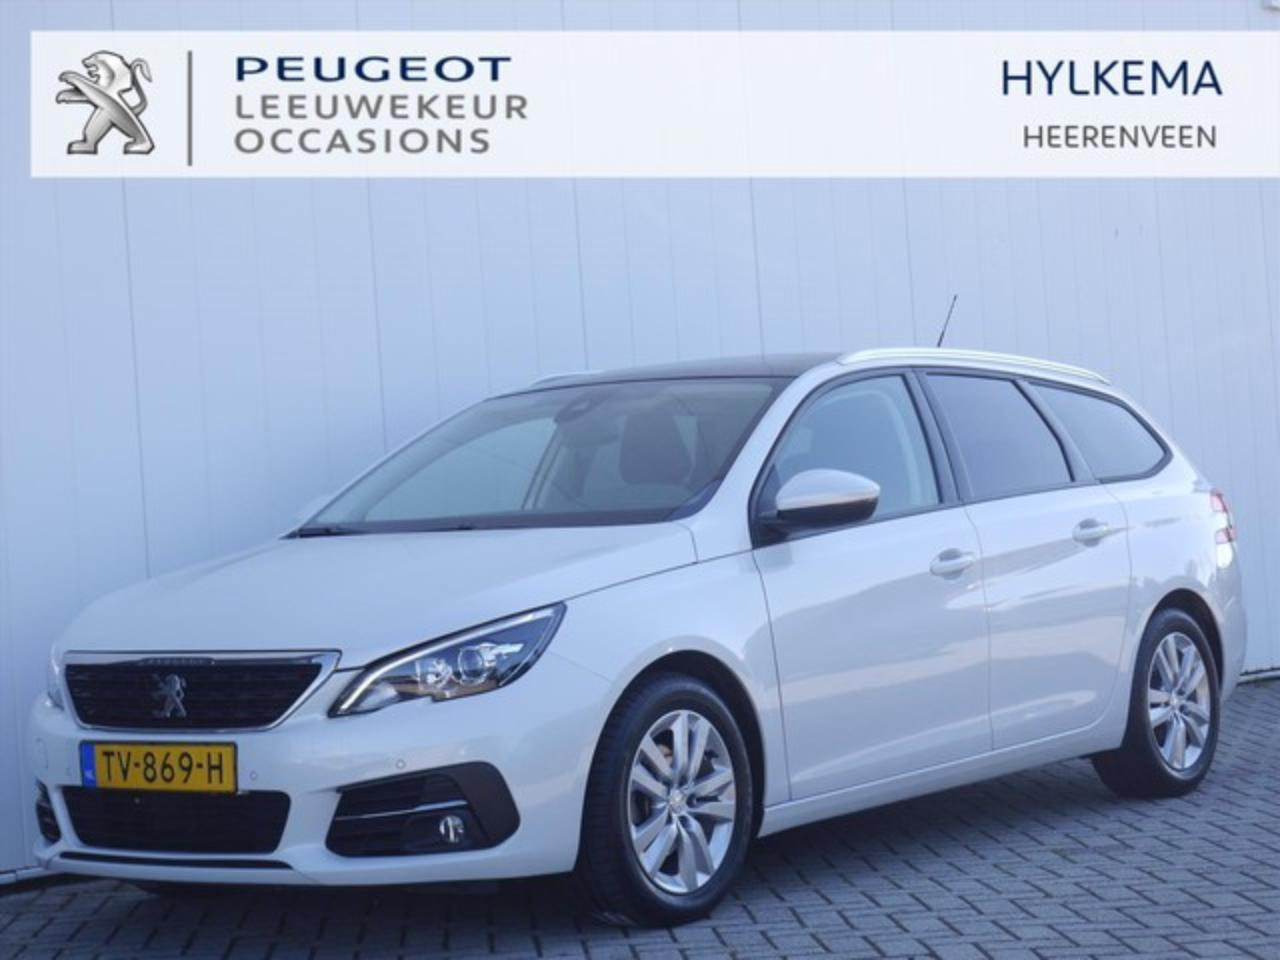 Peugeot 308 SW Executive 1.2 110PK | Navi | Clima | Panorama